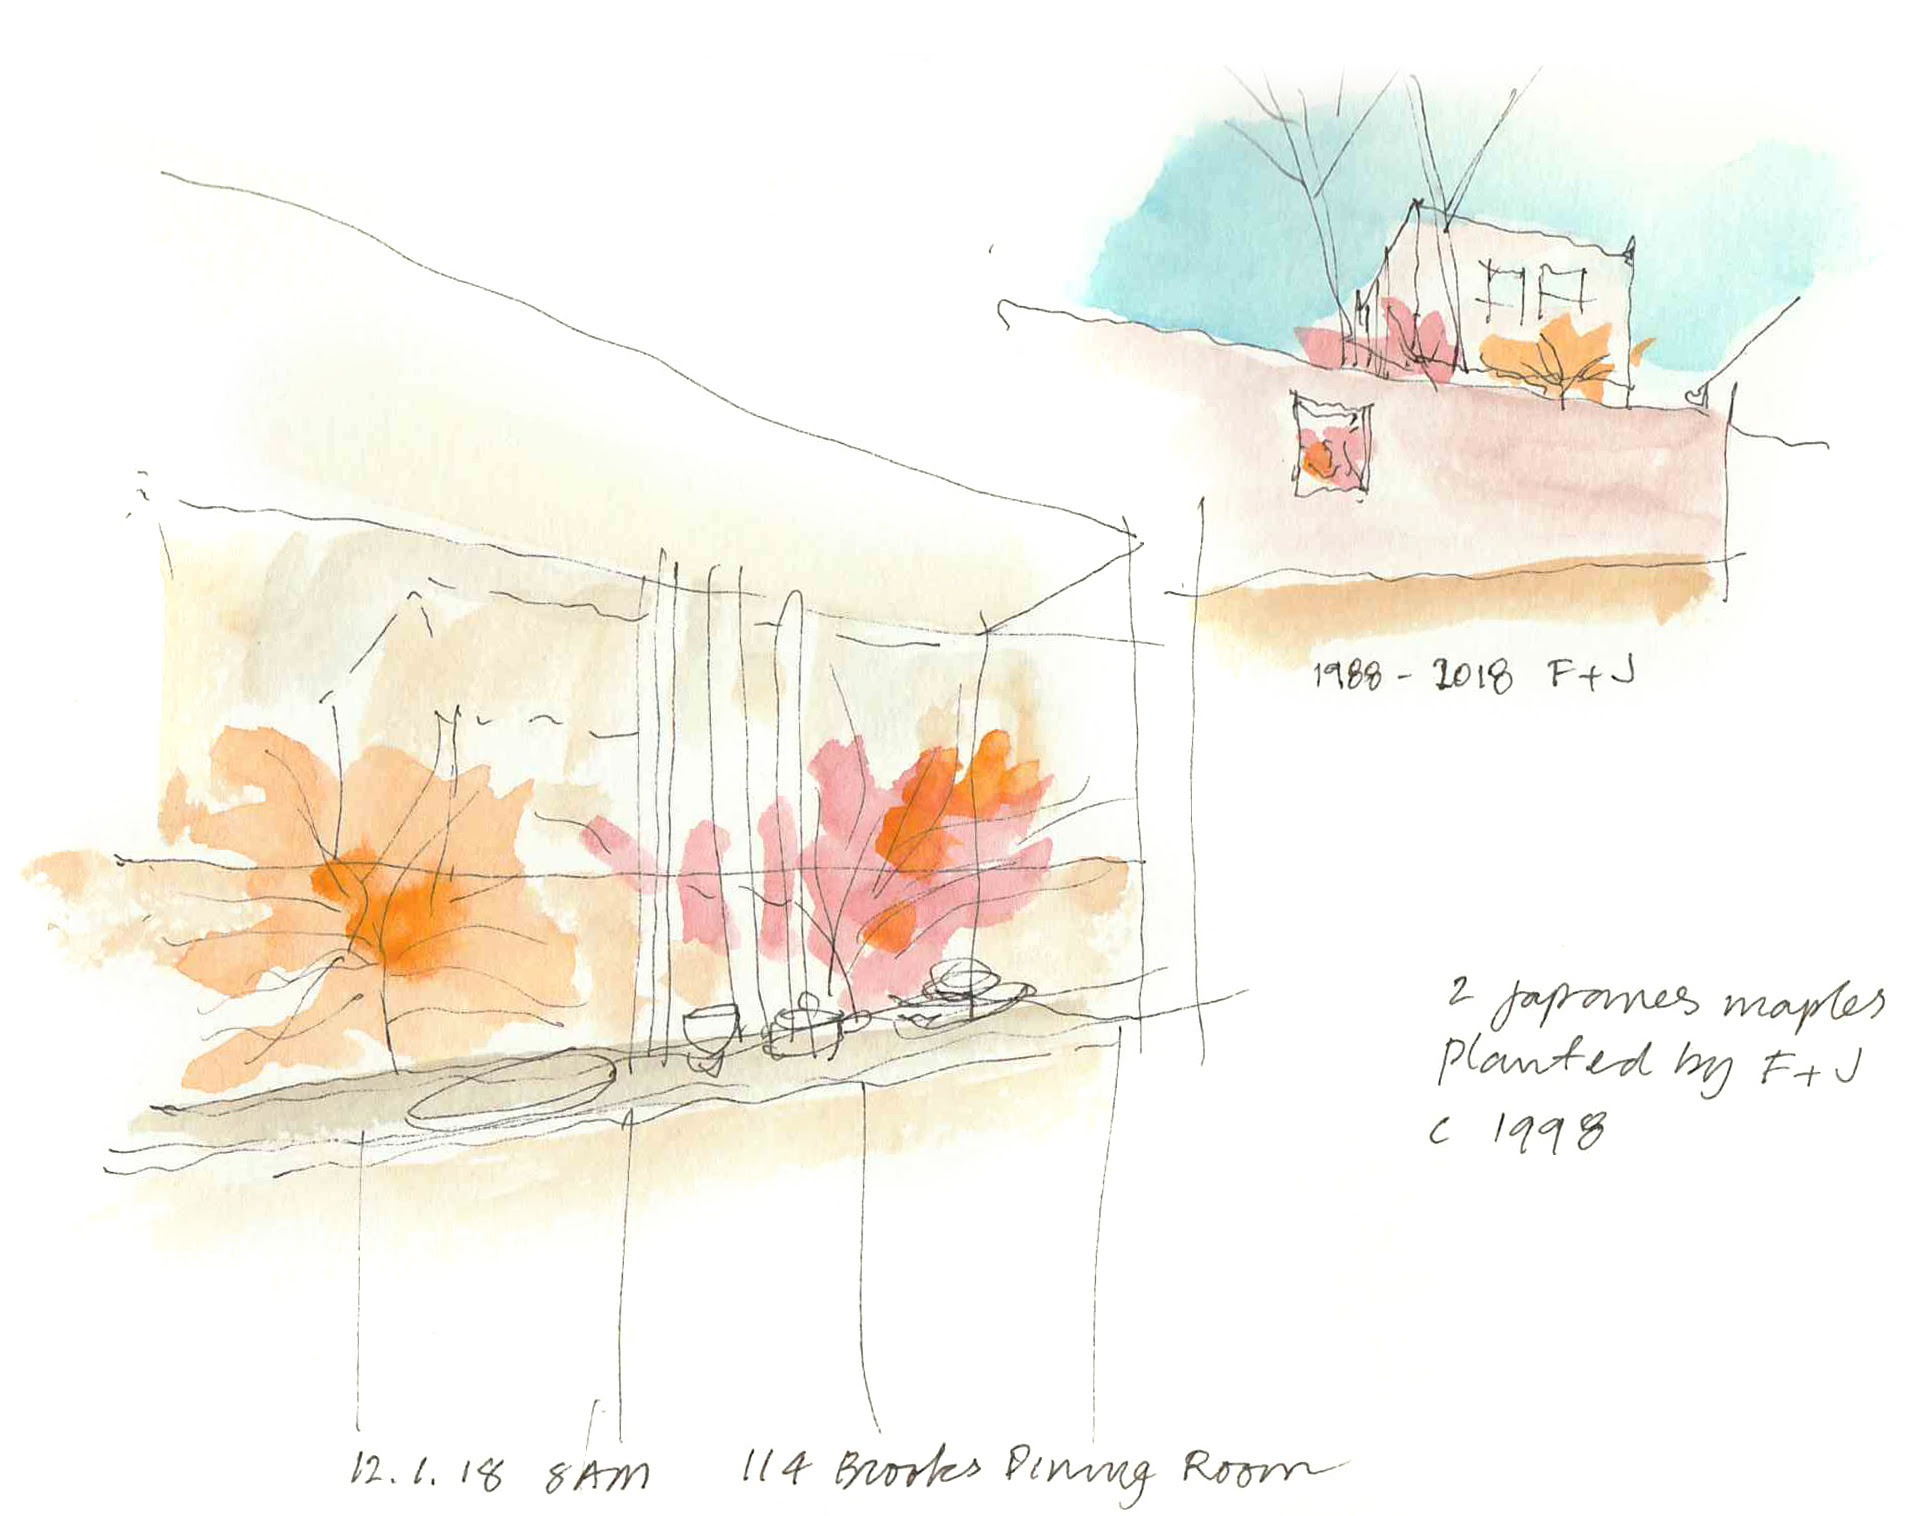 Garden Diary Sketches, by Frank Harmon